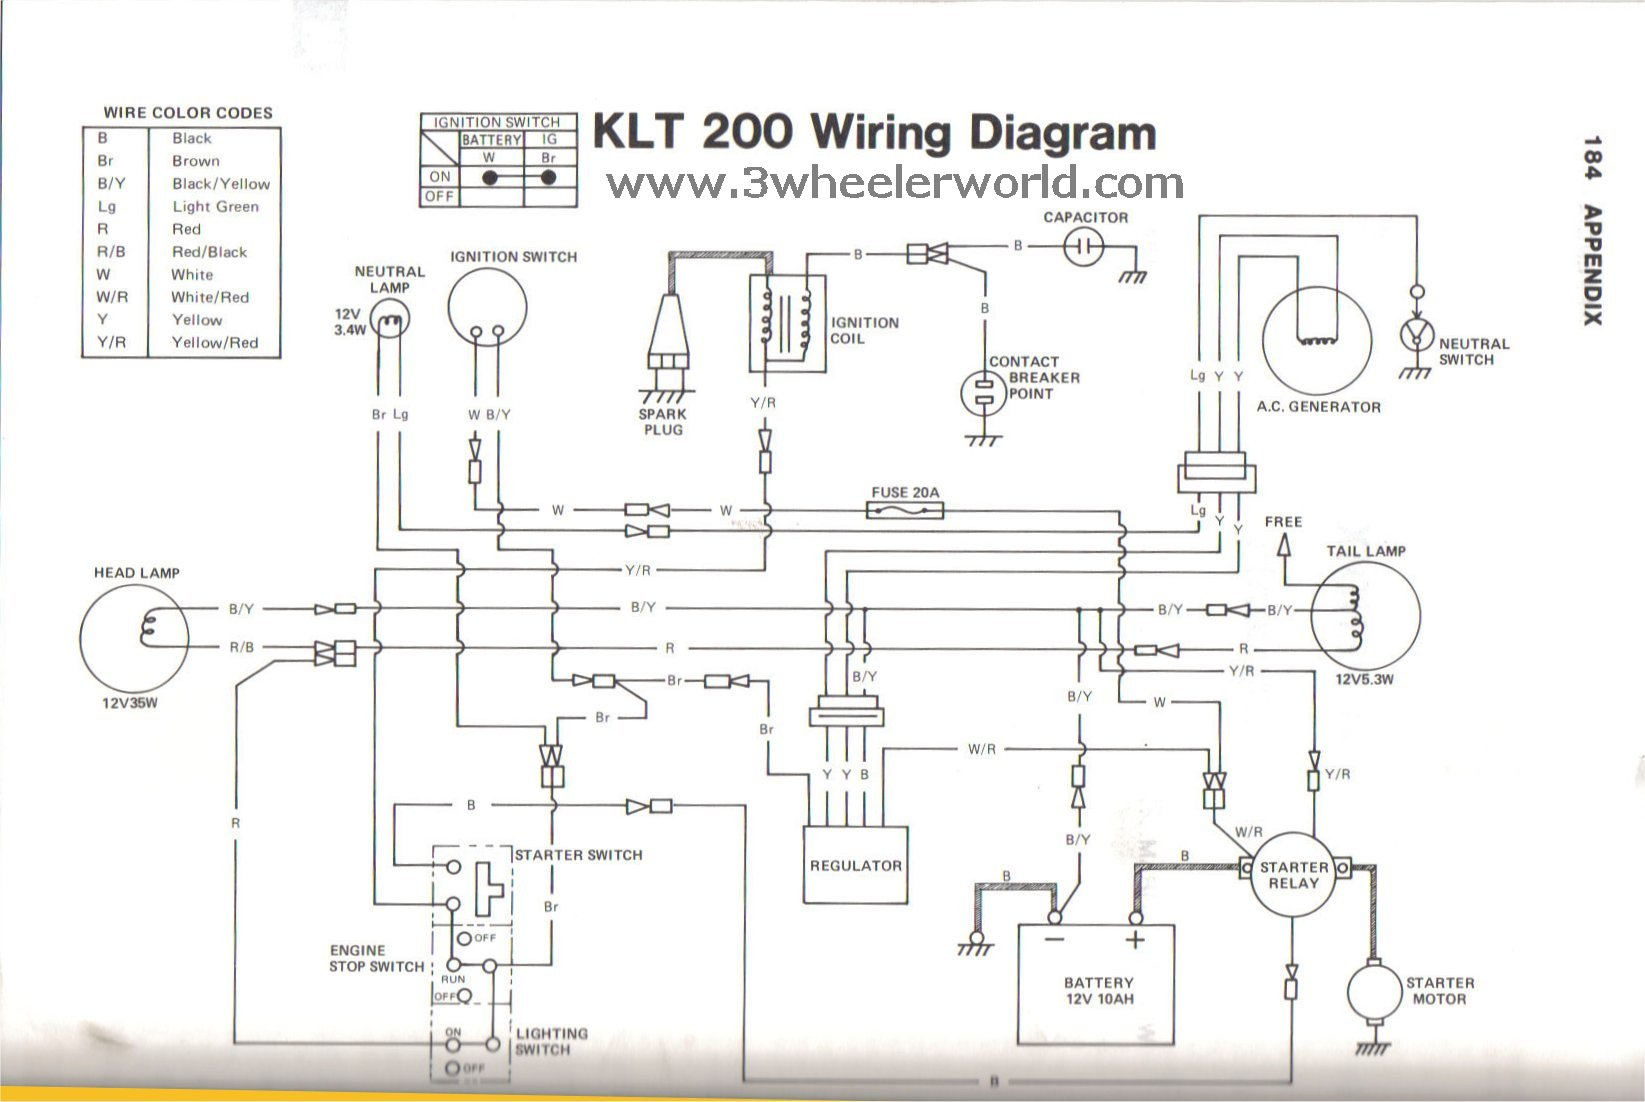 Kawasaki Ninja Wiring Diagrams on kawasaki 220 atv wiring diagram